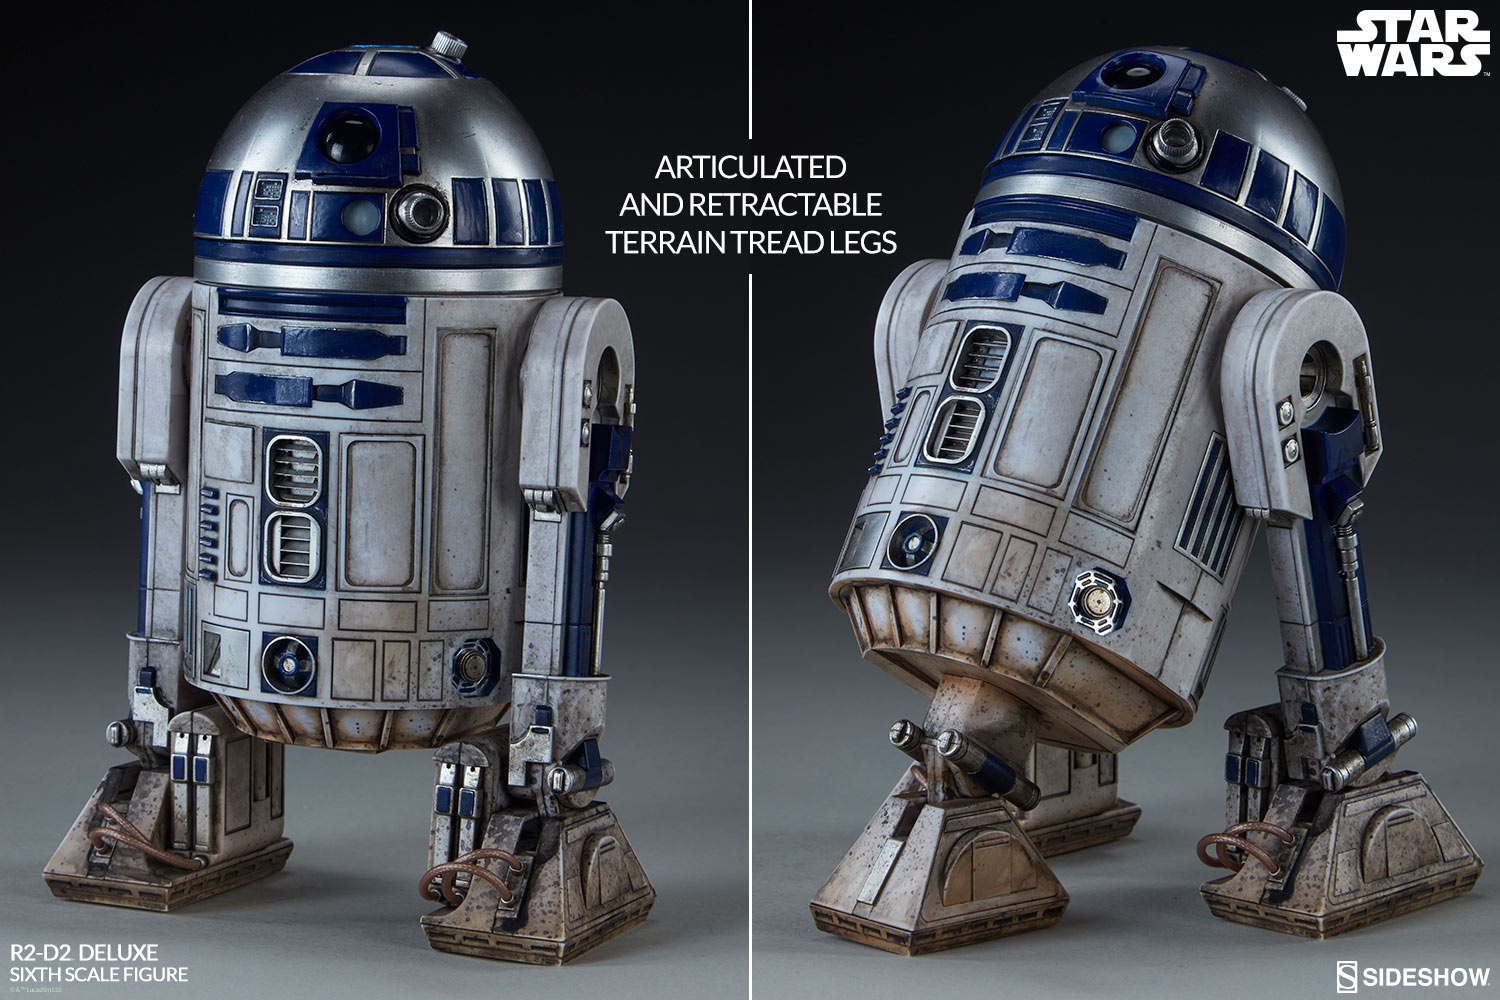 Star Wars R2-D2 Deluxe Sixth Scale Figure by Sideshow Collec